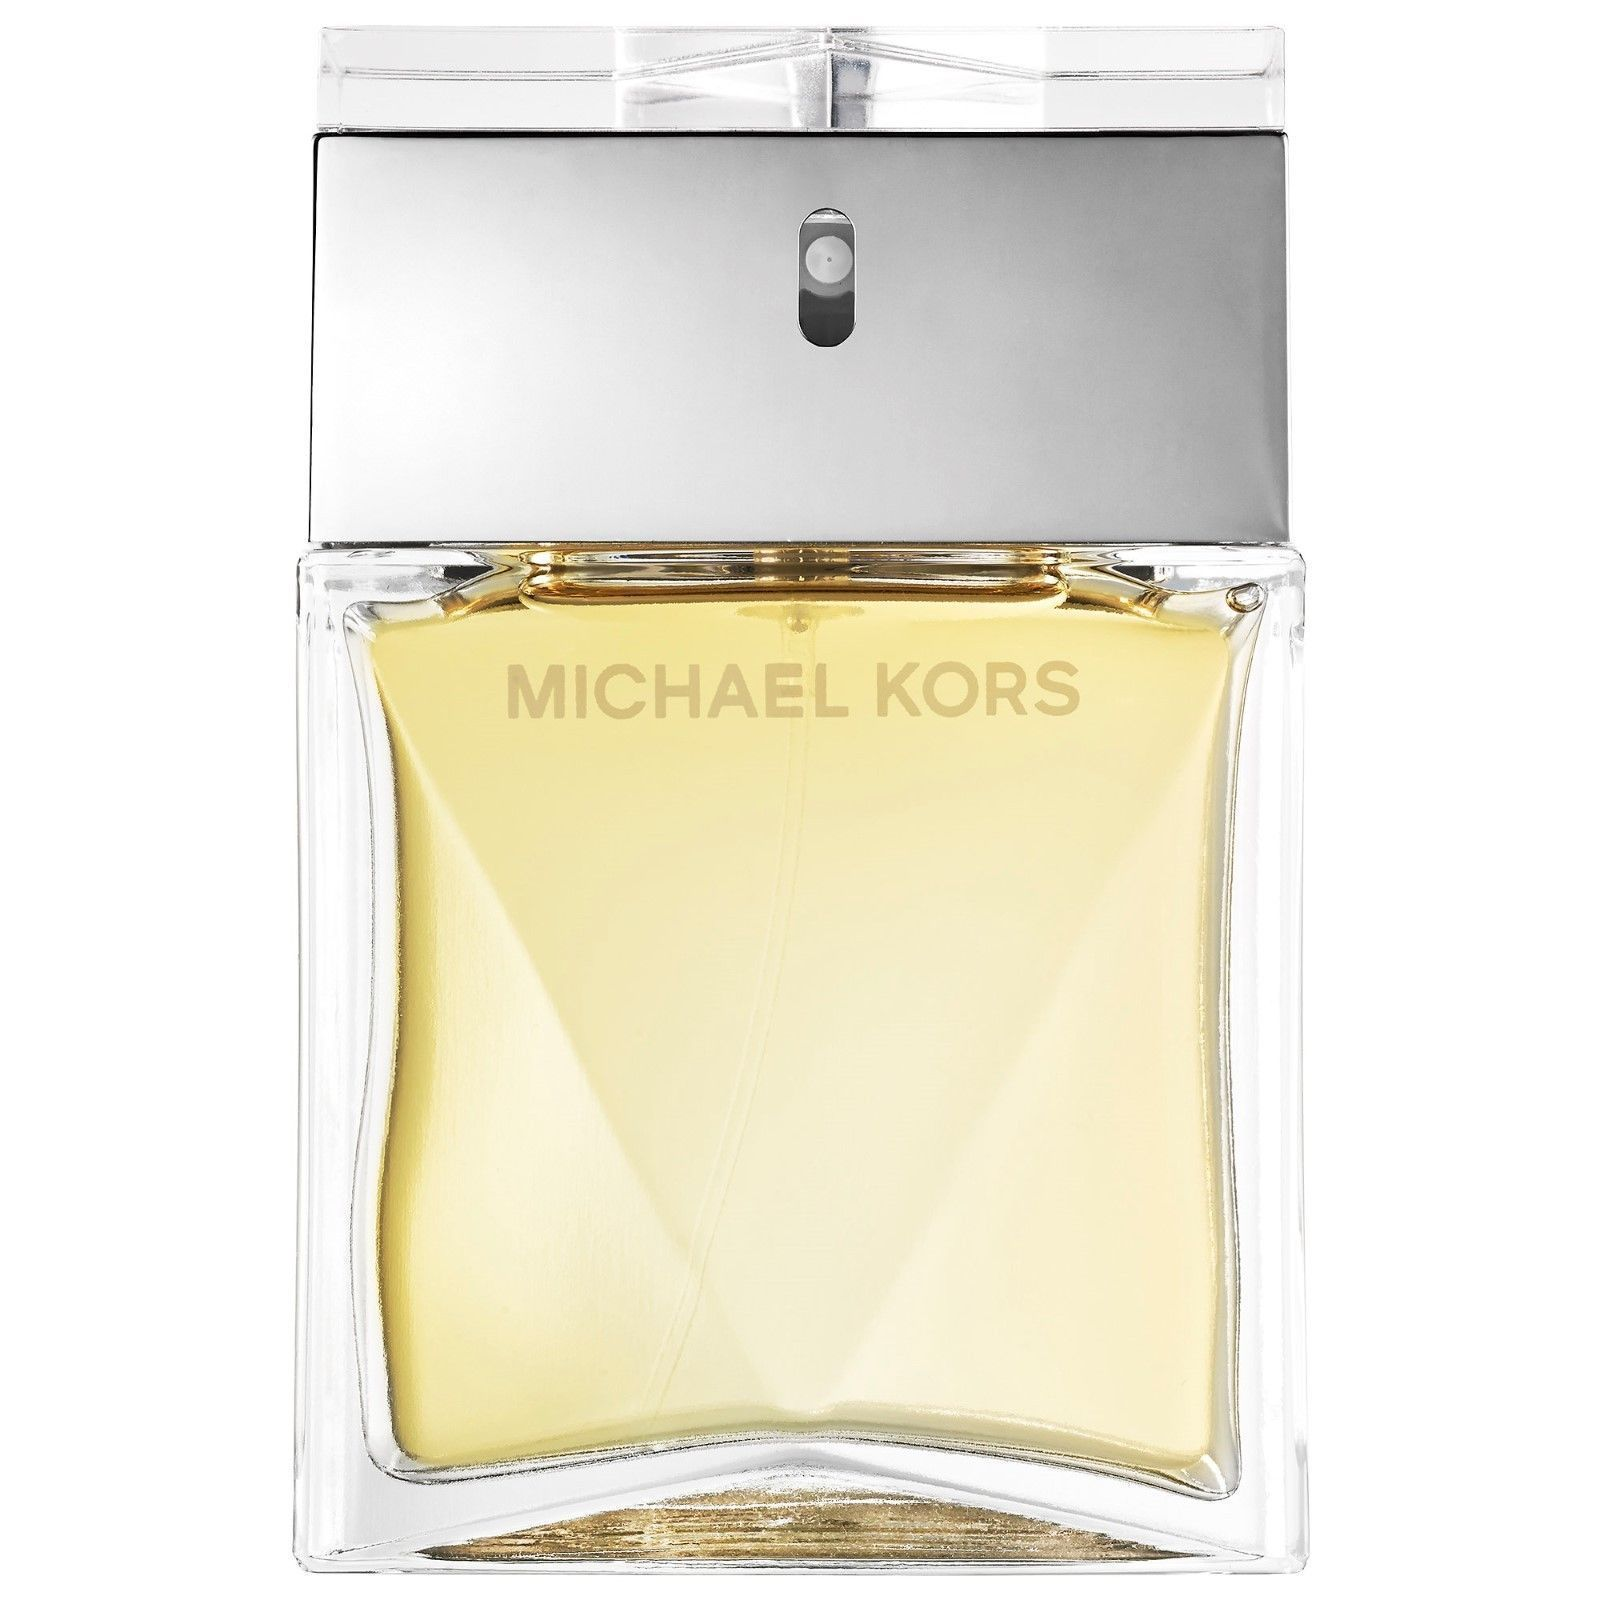 Michael Kors Perfume Eau De Parfum Perfume Womens SeXy 3.4oz 100ml NEW